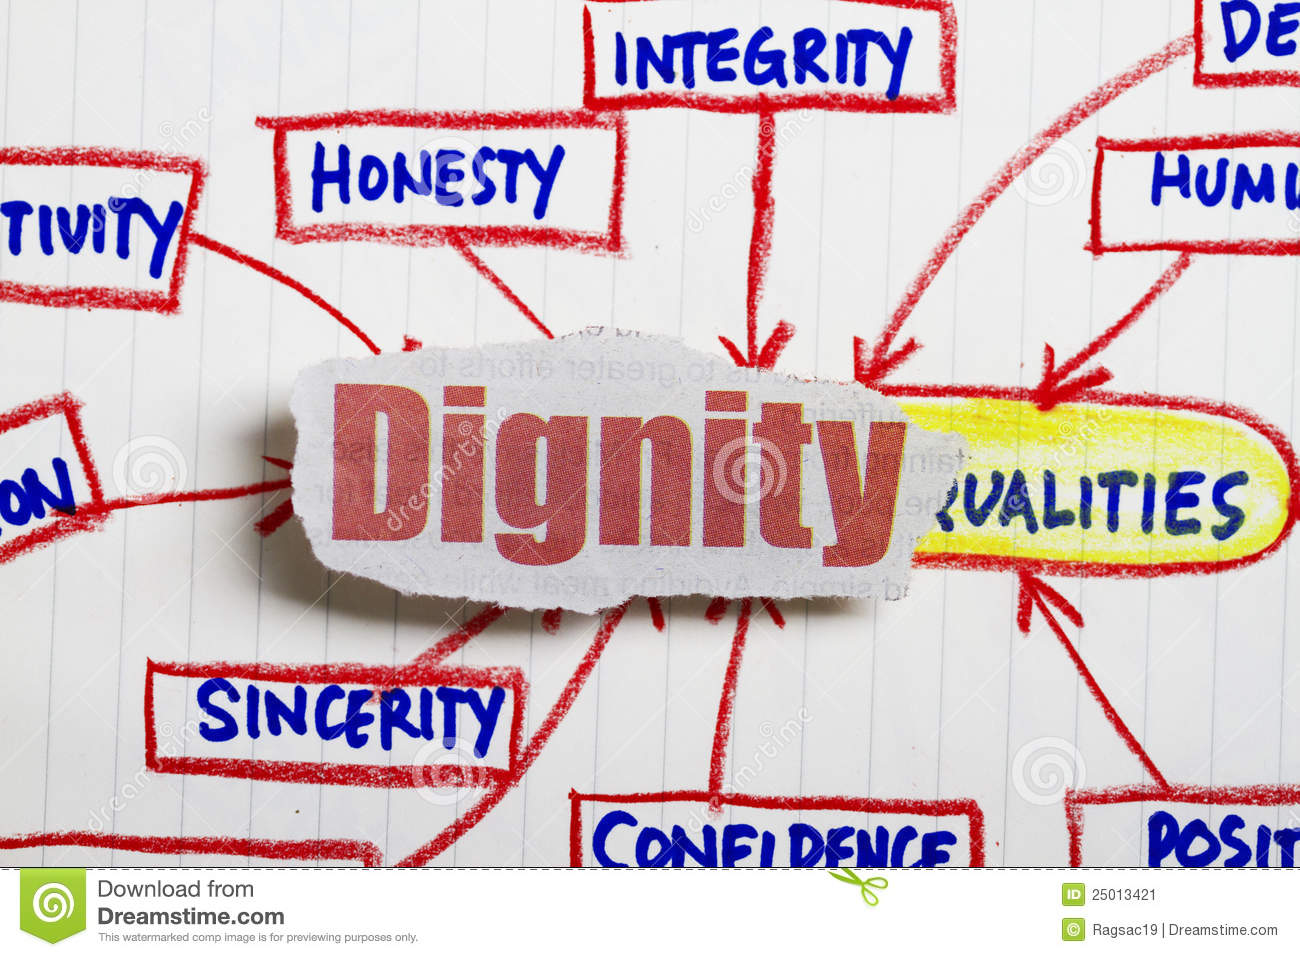 dignity Dignity is what people keep when they preserve their self-respect one with dignity demands respect and acts formally acting with dignity can also mean navigating through a situation with eloquence and not losing one's cool one can lose their dignity temporarily but later gain it back.